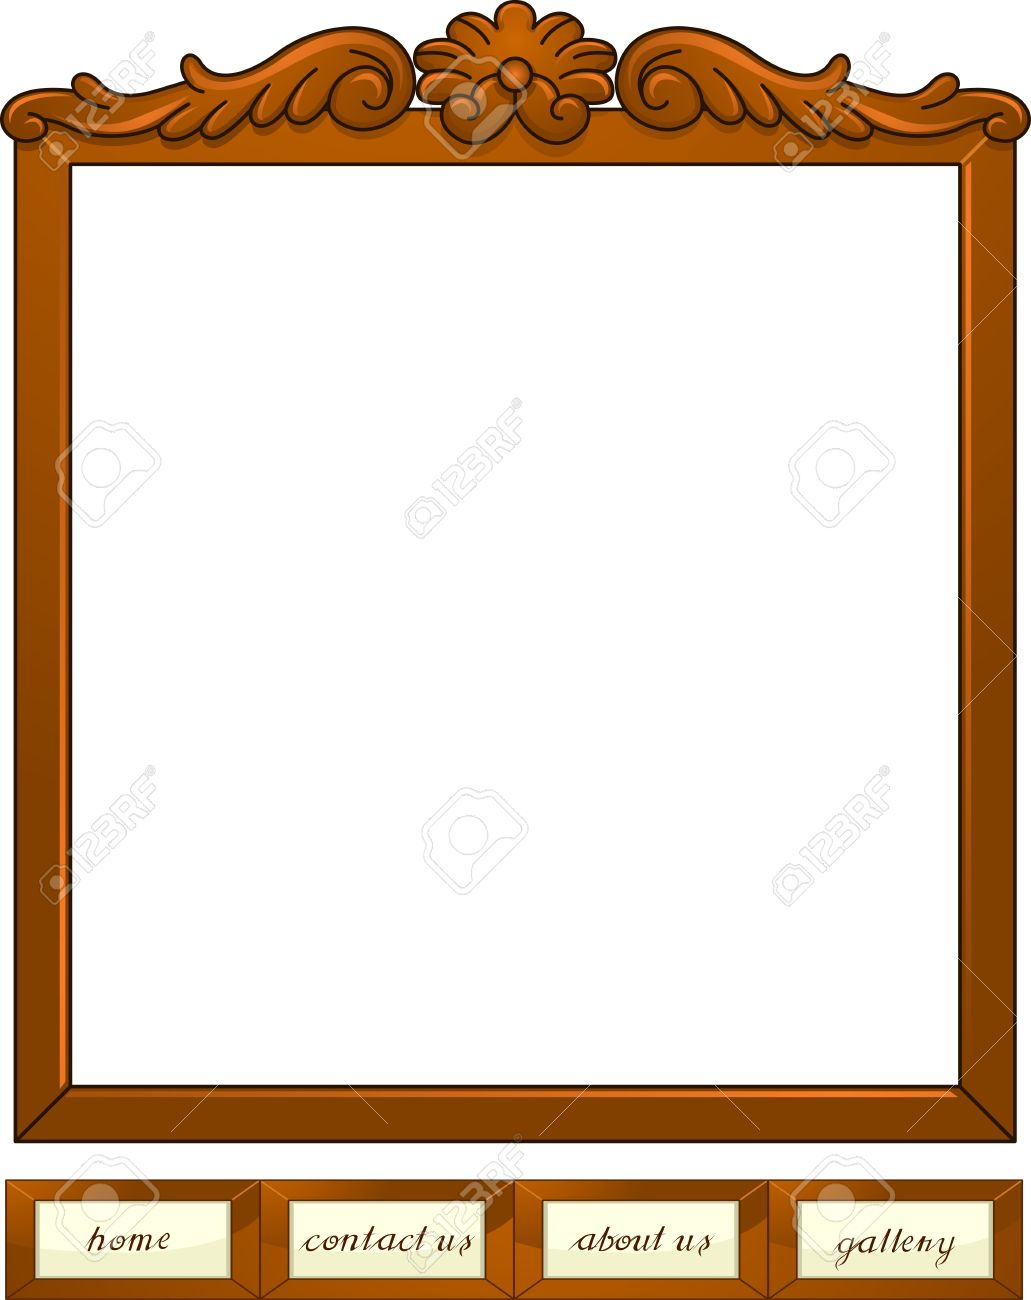 Illustration Of Web Buttons With A Wooden Frame Design Stock Photo